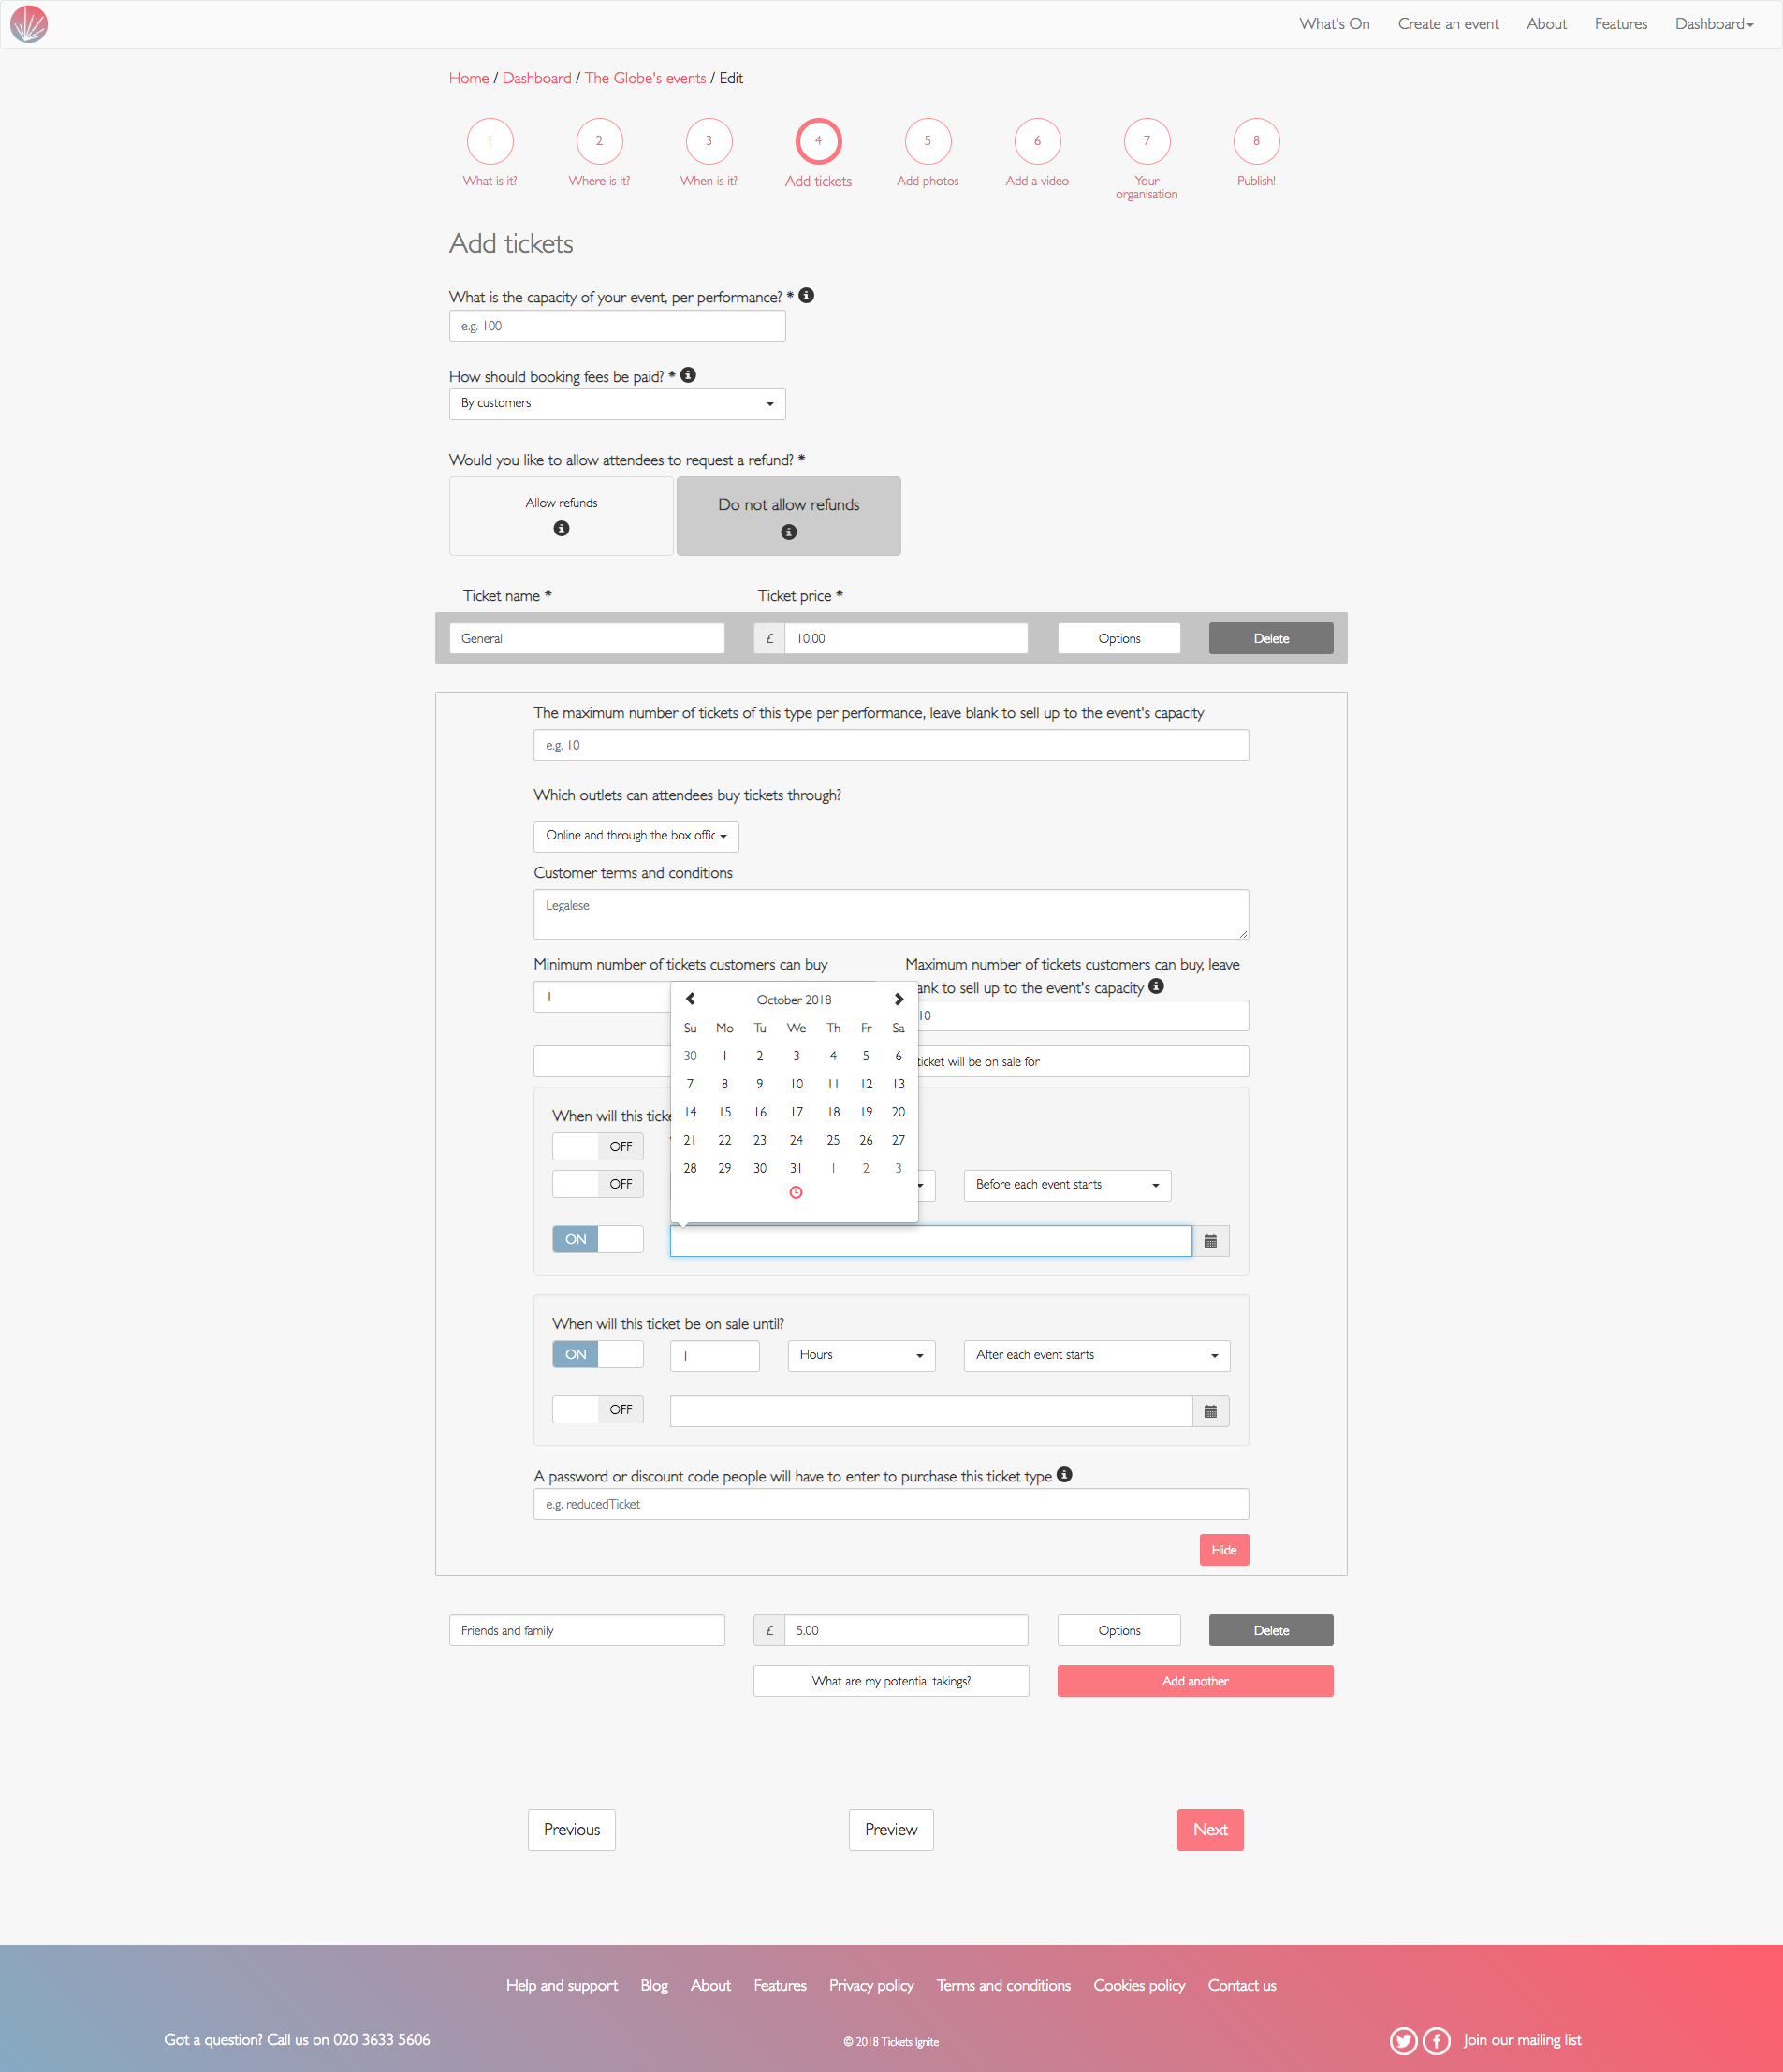 screenshot of creating a ticket type that goes on sale on a particular date